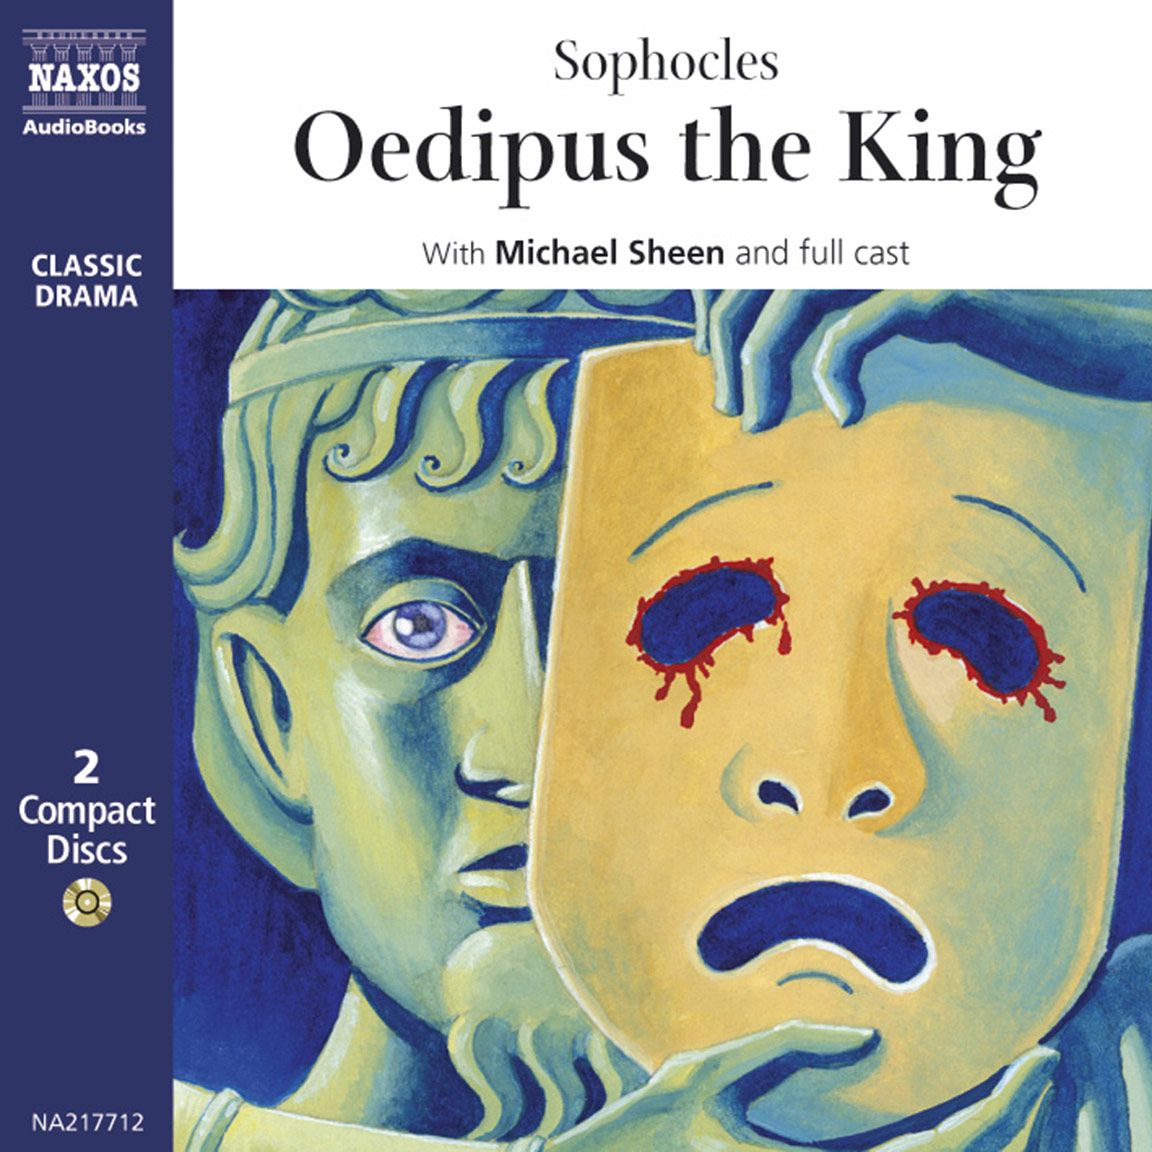 "the essence of drama in aristotles oedipus the king Oedipus rex is aristotle's ideal tragedy because it fulfills so many requirements for a successful tragedy o imitation"" : aristotle declares that the artist does not just copy the shifting appearances of the world, but rather imitates or represents reality itself, and gives form and meaning to that reality o an action that is serious."